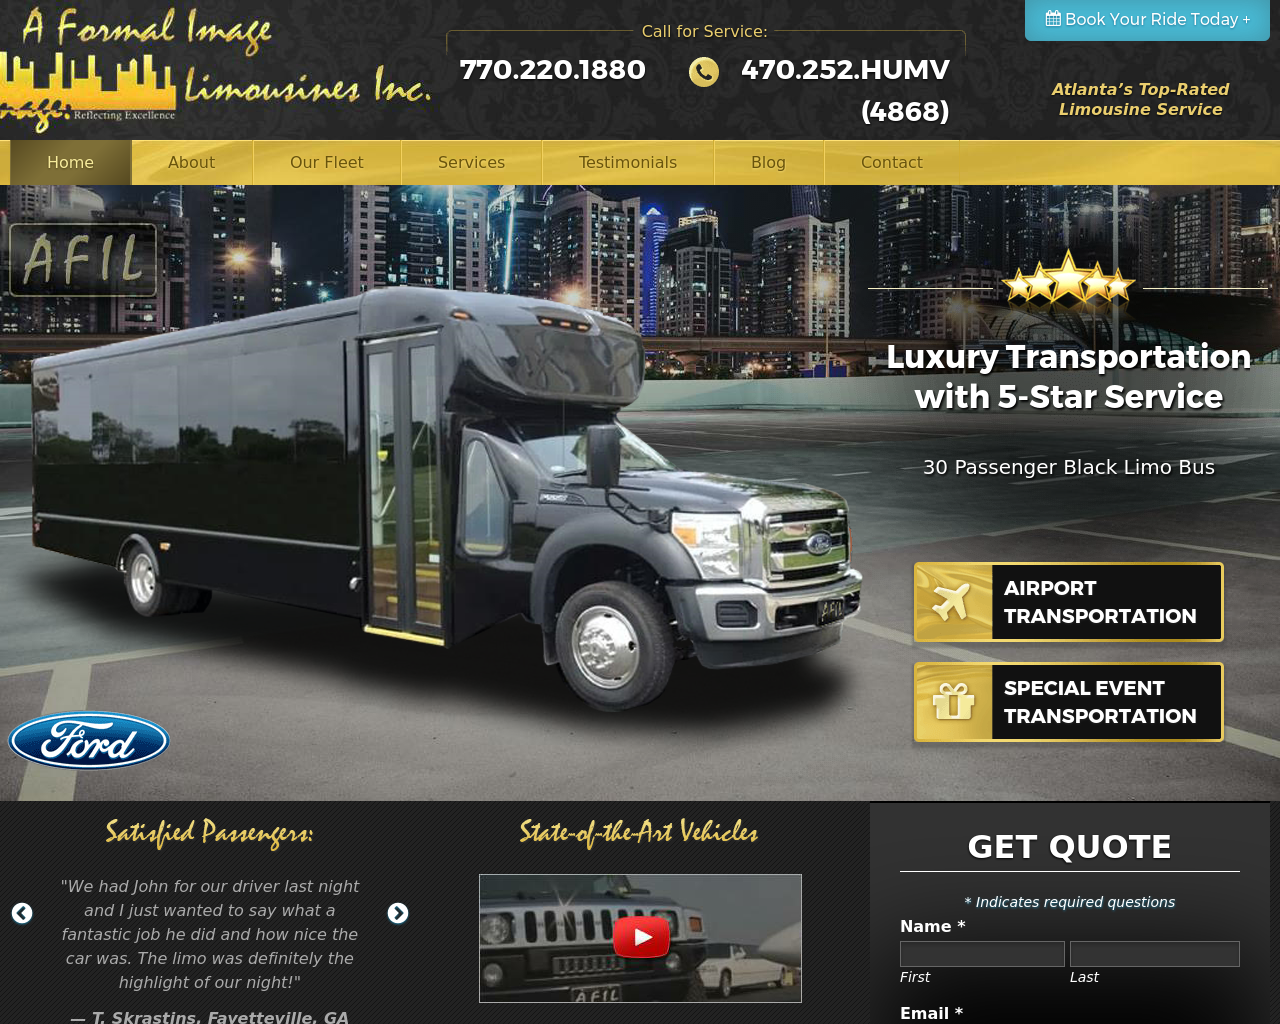 A-Formal-Image-Limousines-LTD.-Advertising-Reviews-Pricing